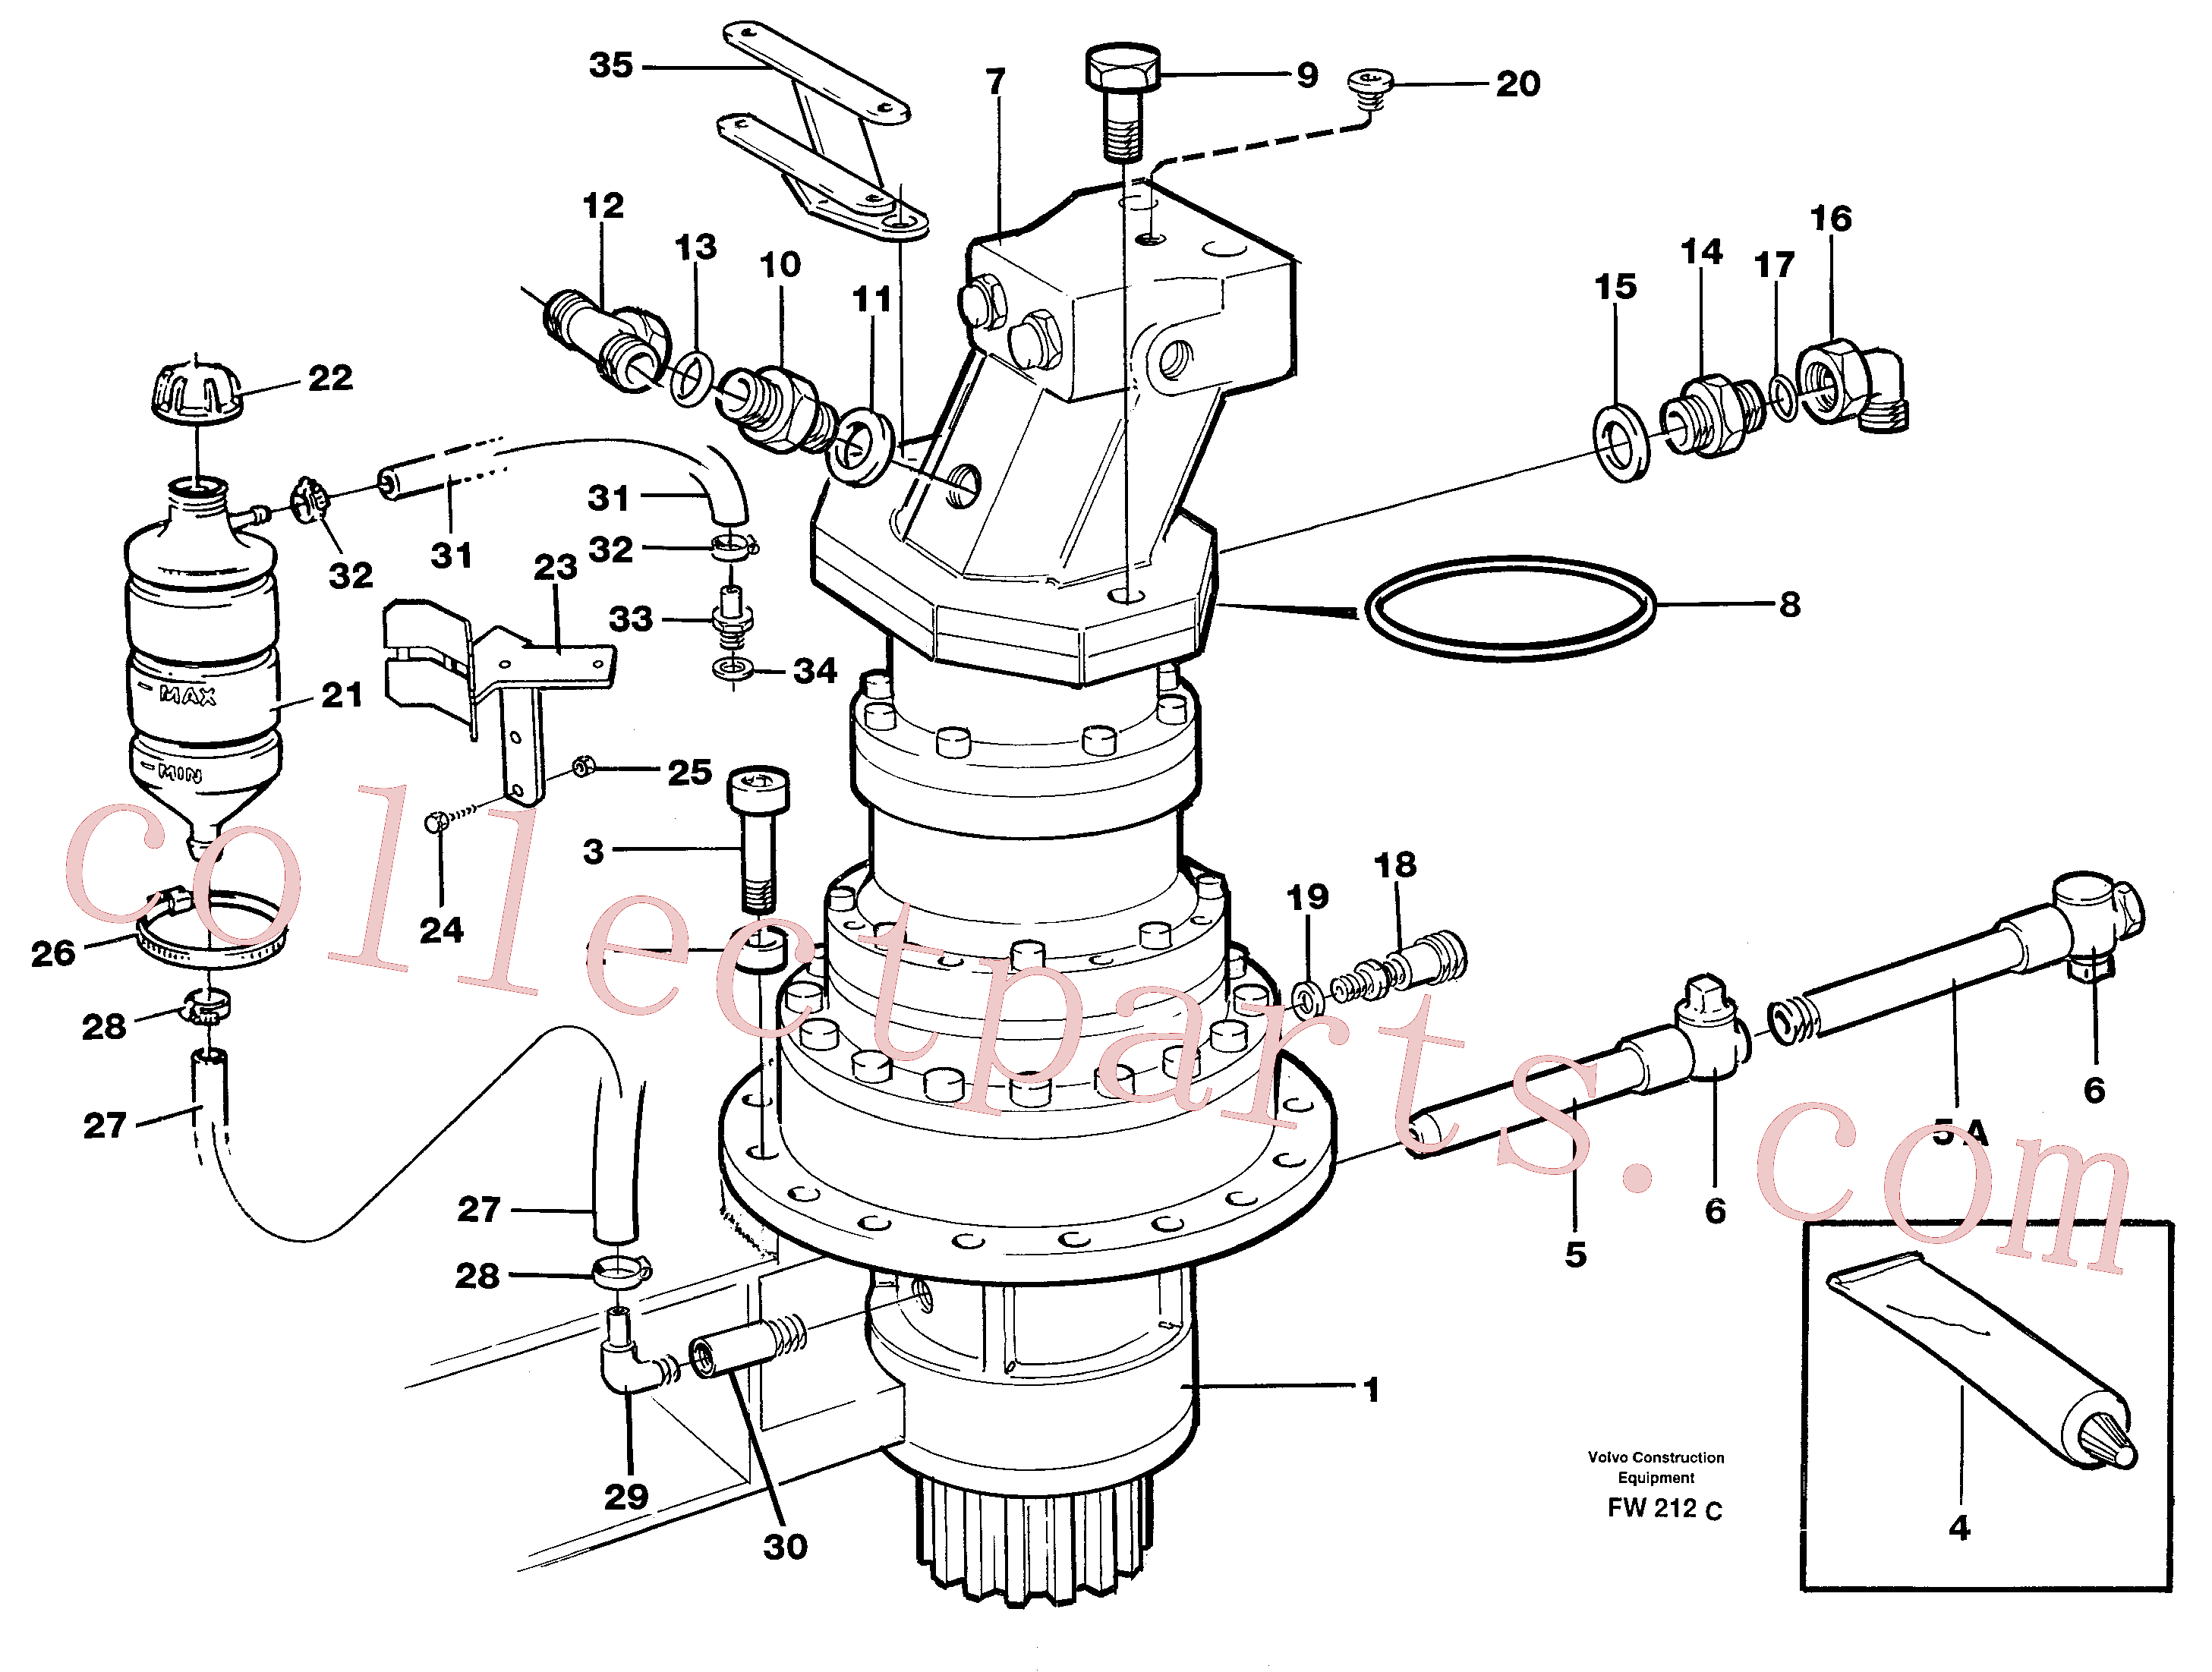 VOE14344426 for Volvo Swing gearbox with fitting parts(FW212C assembly)